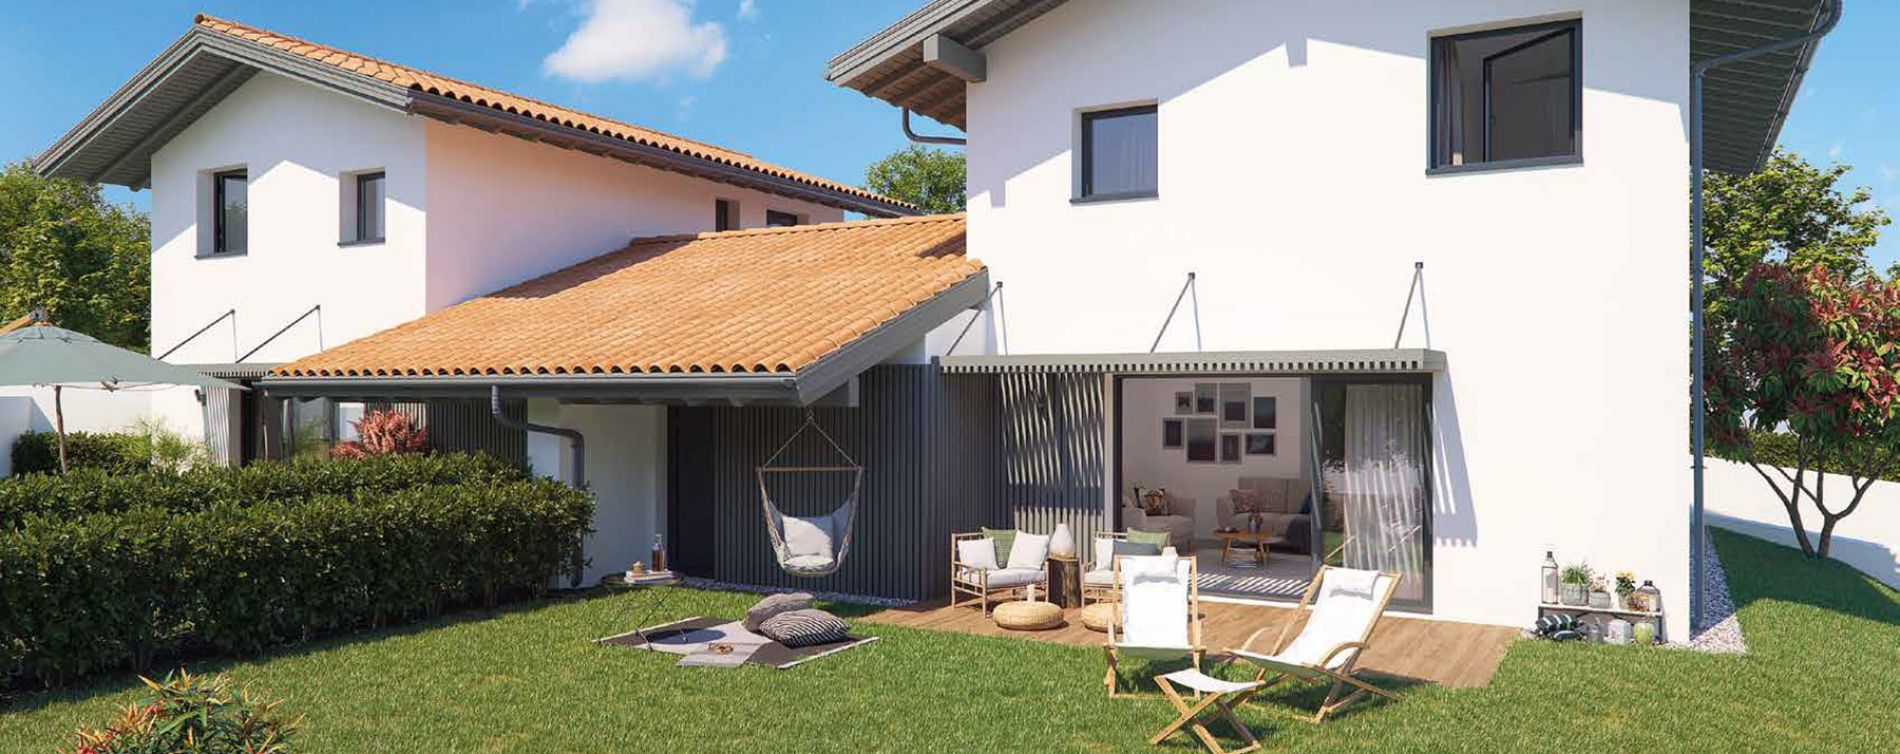 Anglet : programme immobilier neuve « Programme immobilier n°217817 »